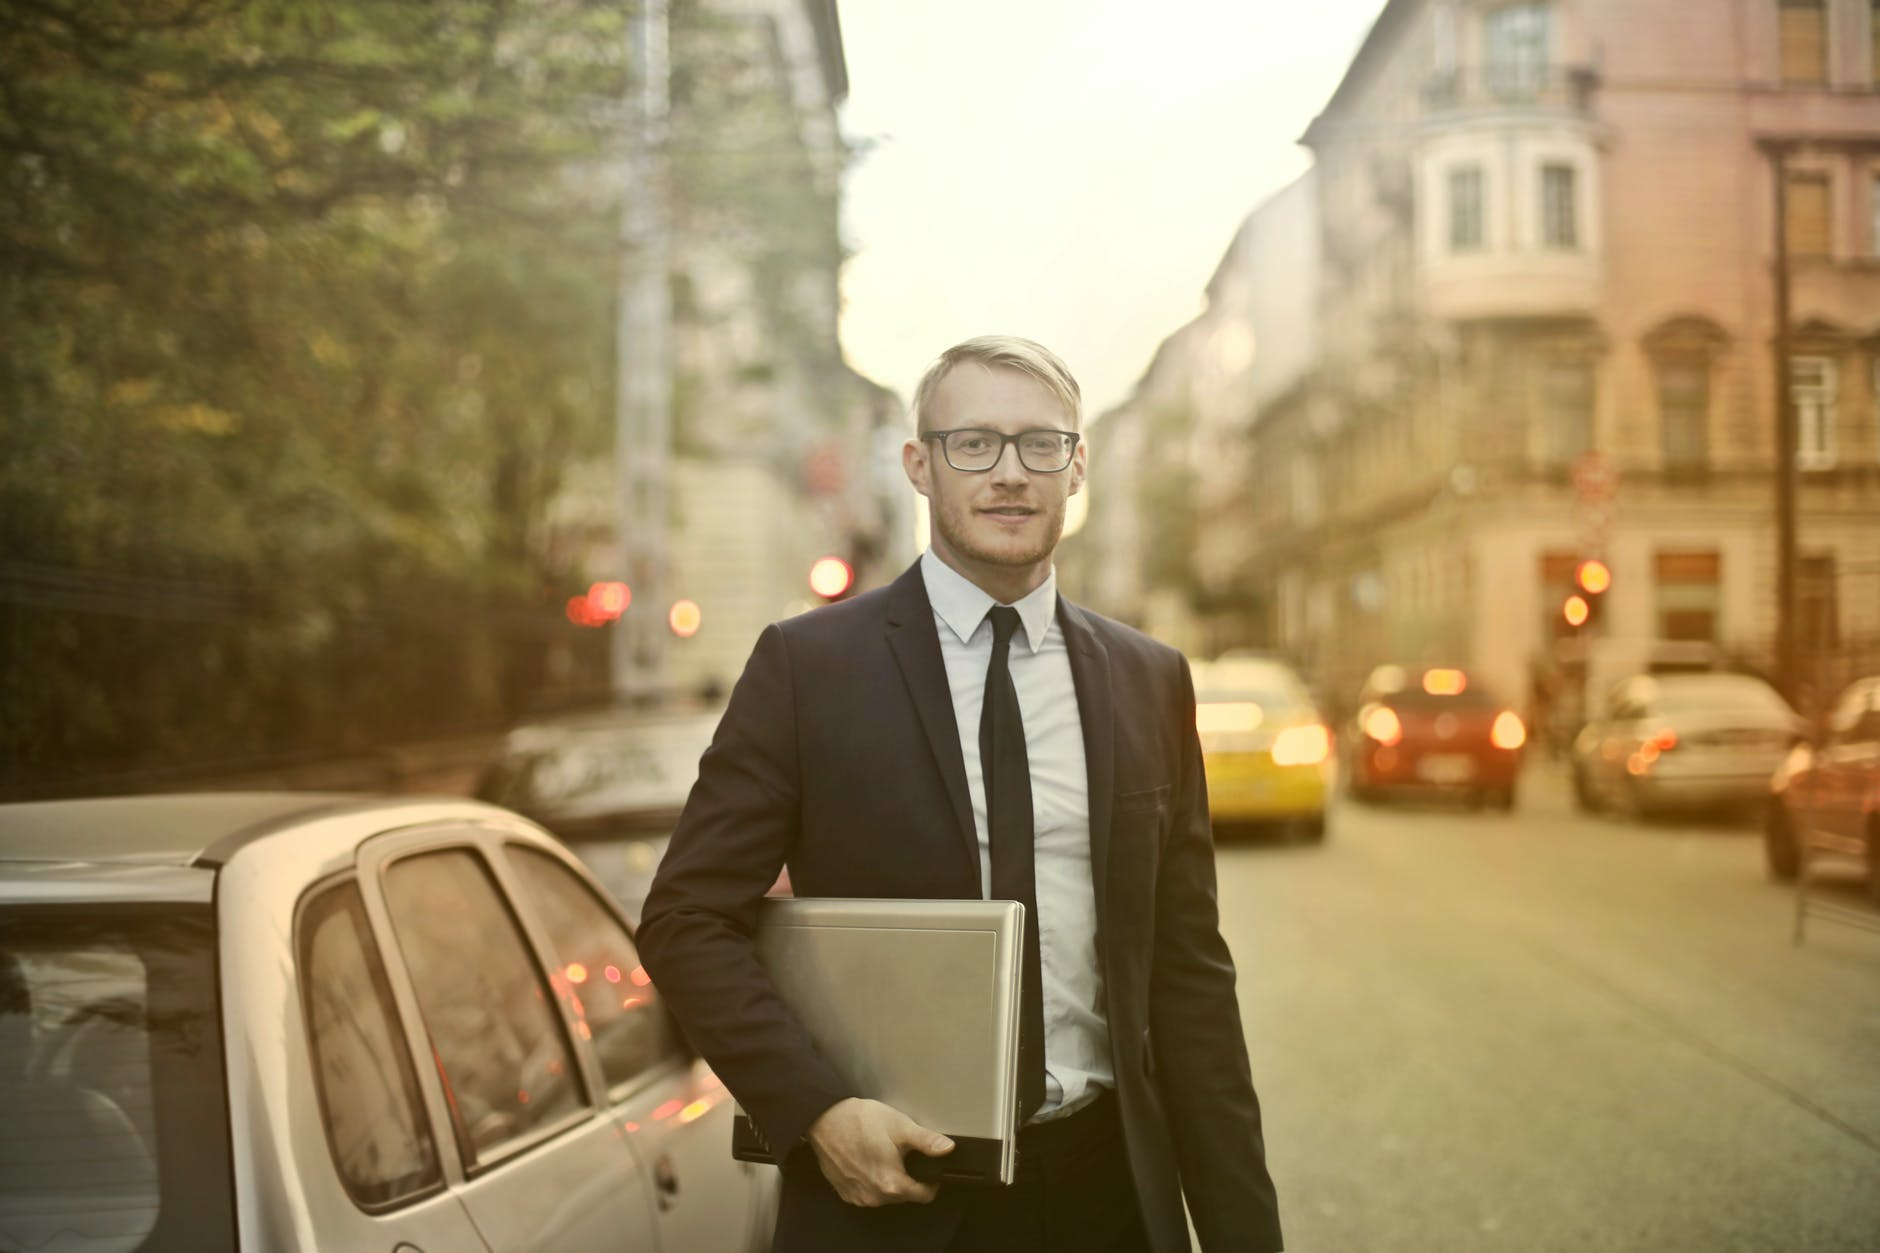 A guy in a suit holding a laptop with a blurry street in the background, whilst standing next to a silver car.